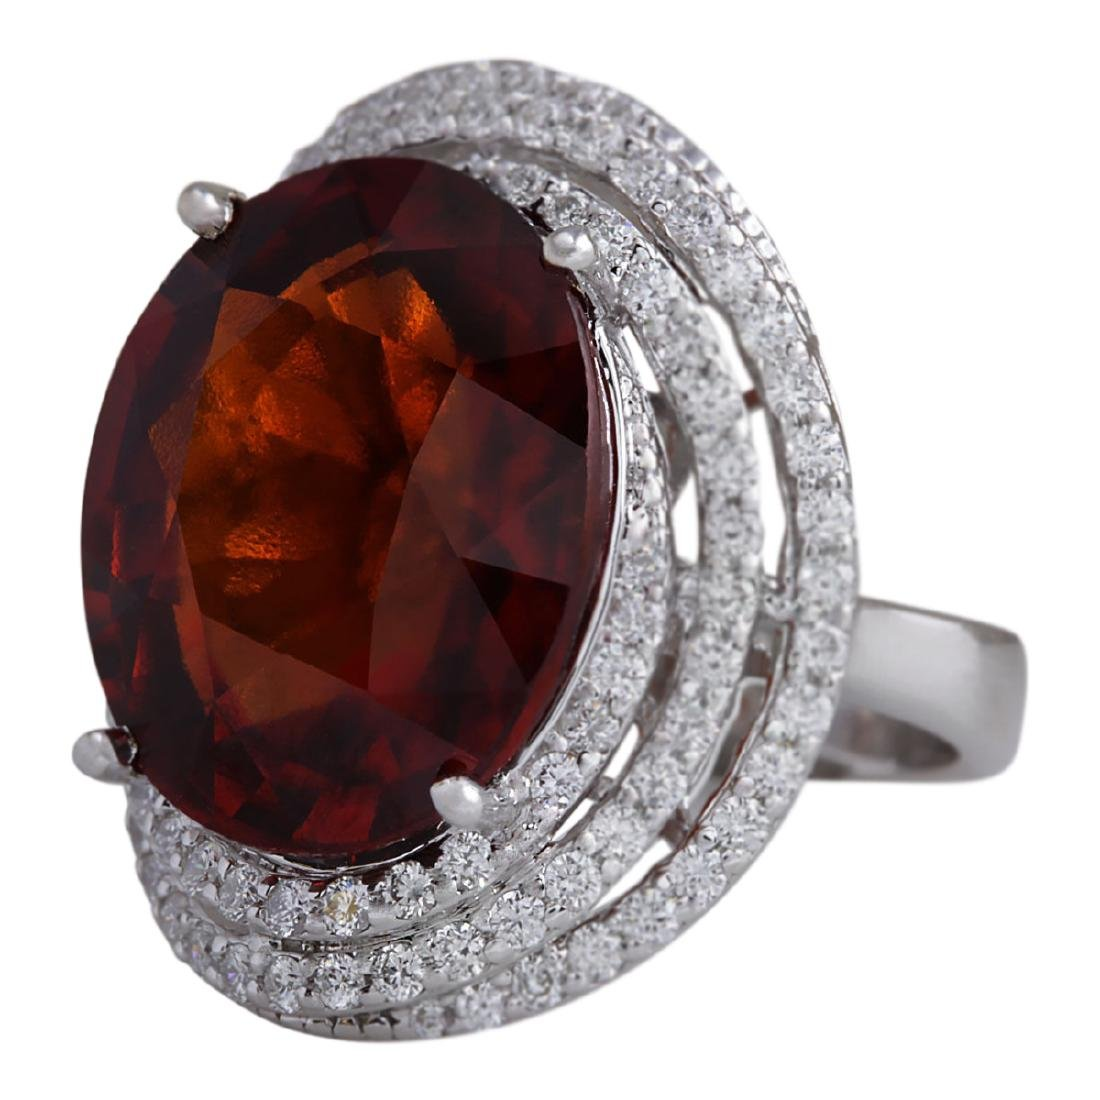 20.25 CTW Natural Hessonite Garnet And Diamond Ring - 2